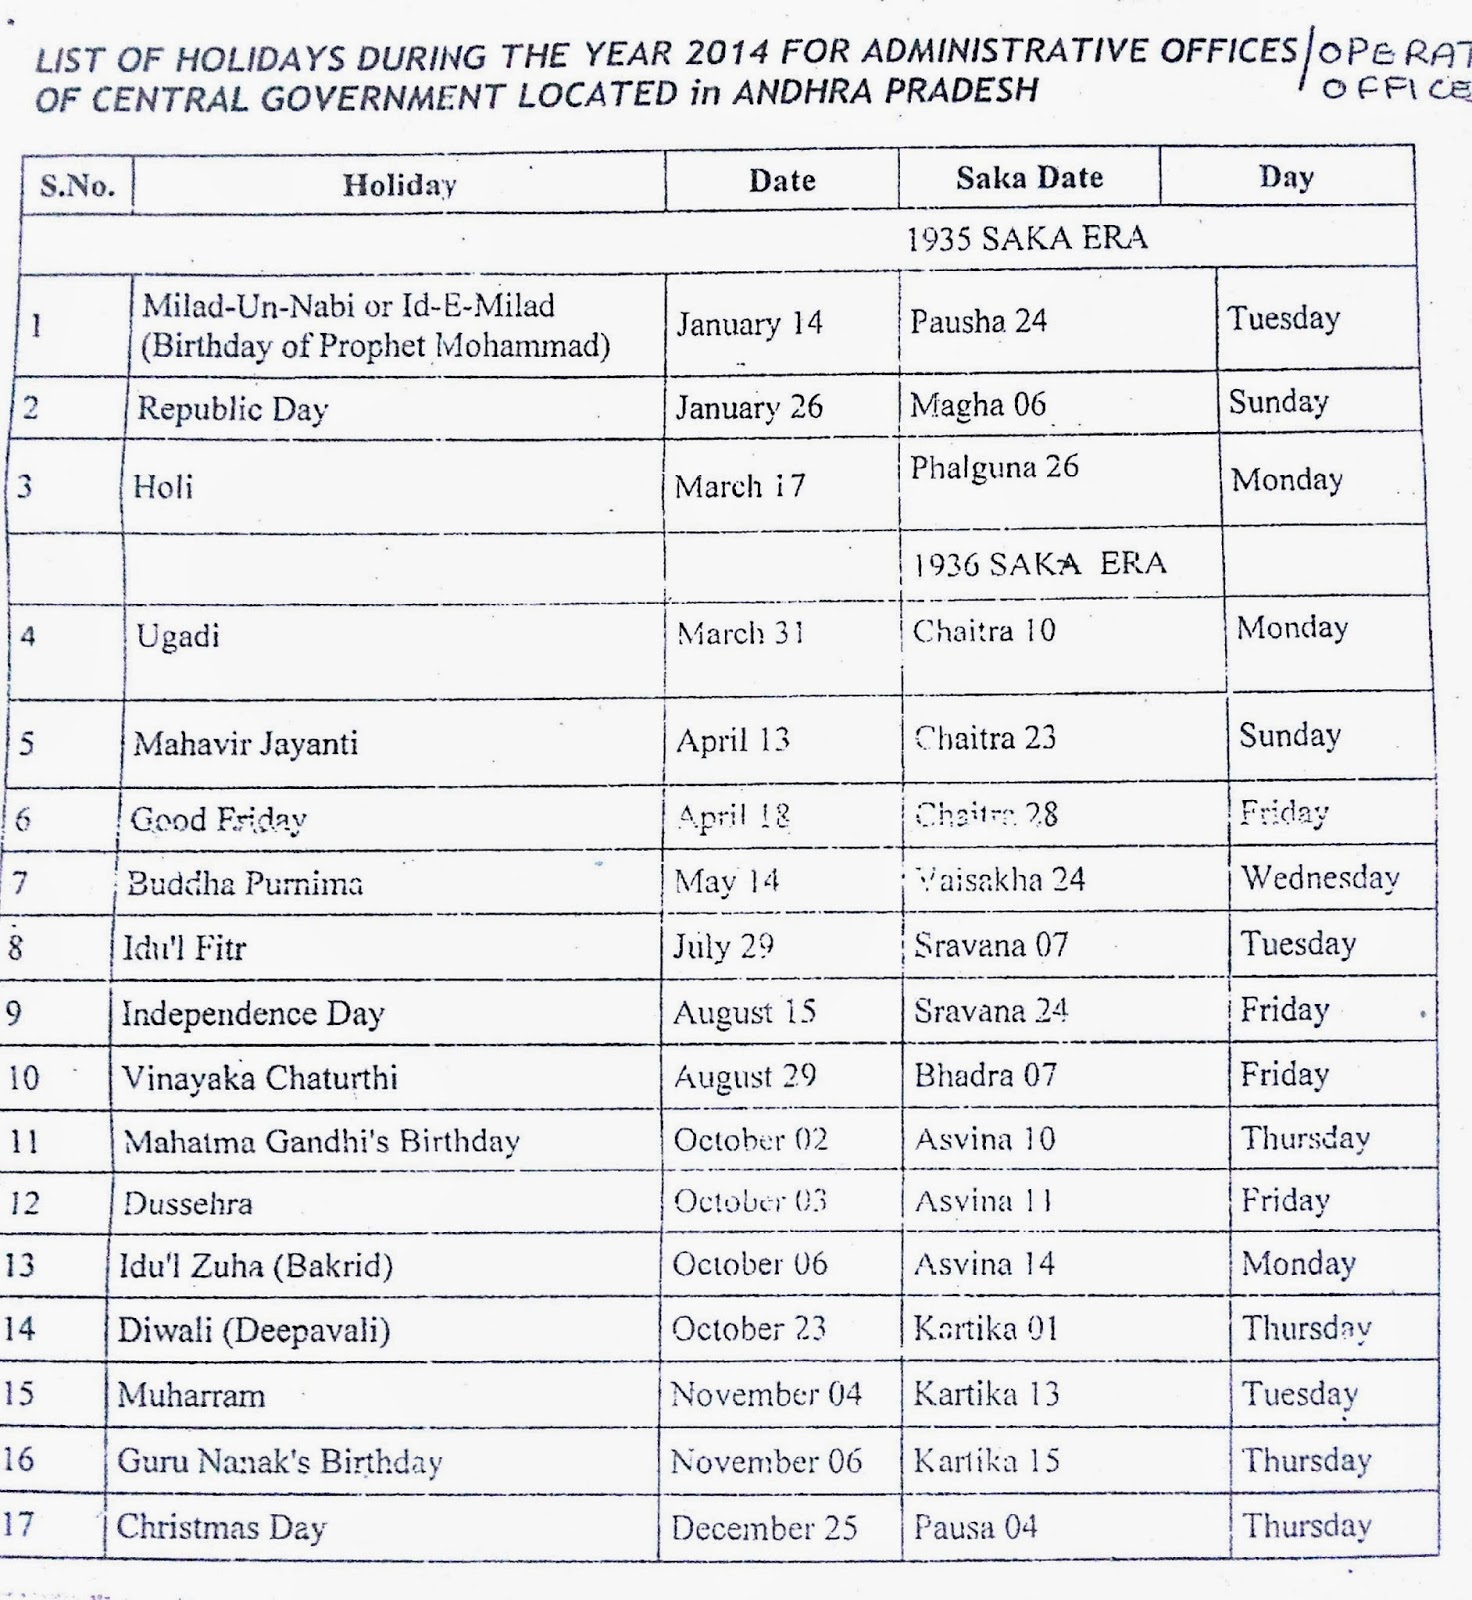 List Of Holidays To Be Observed During The Year 2014 By All Operative And Administrative Offices In APCircle